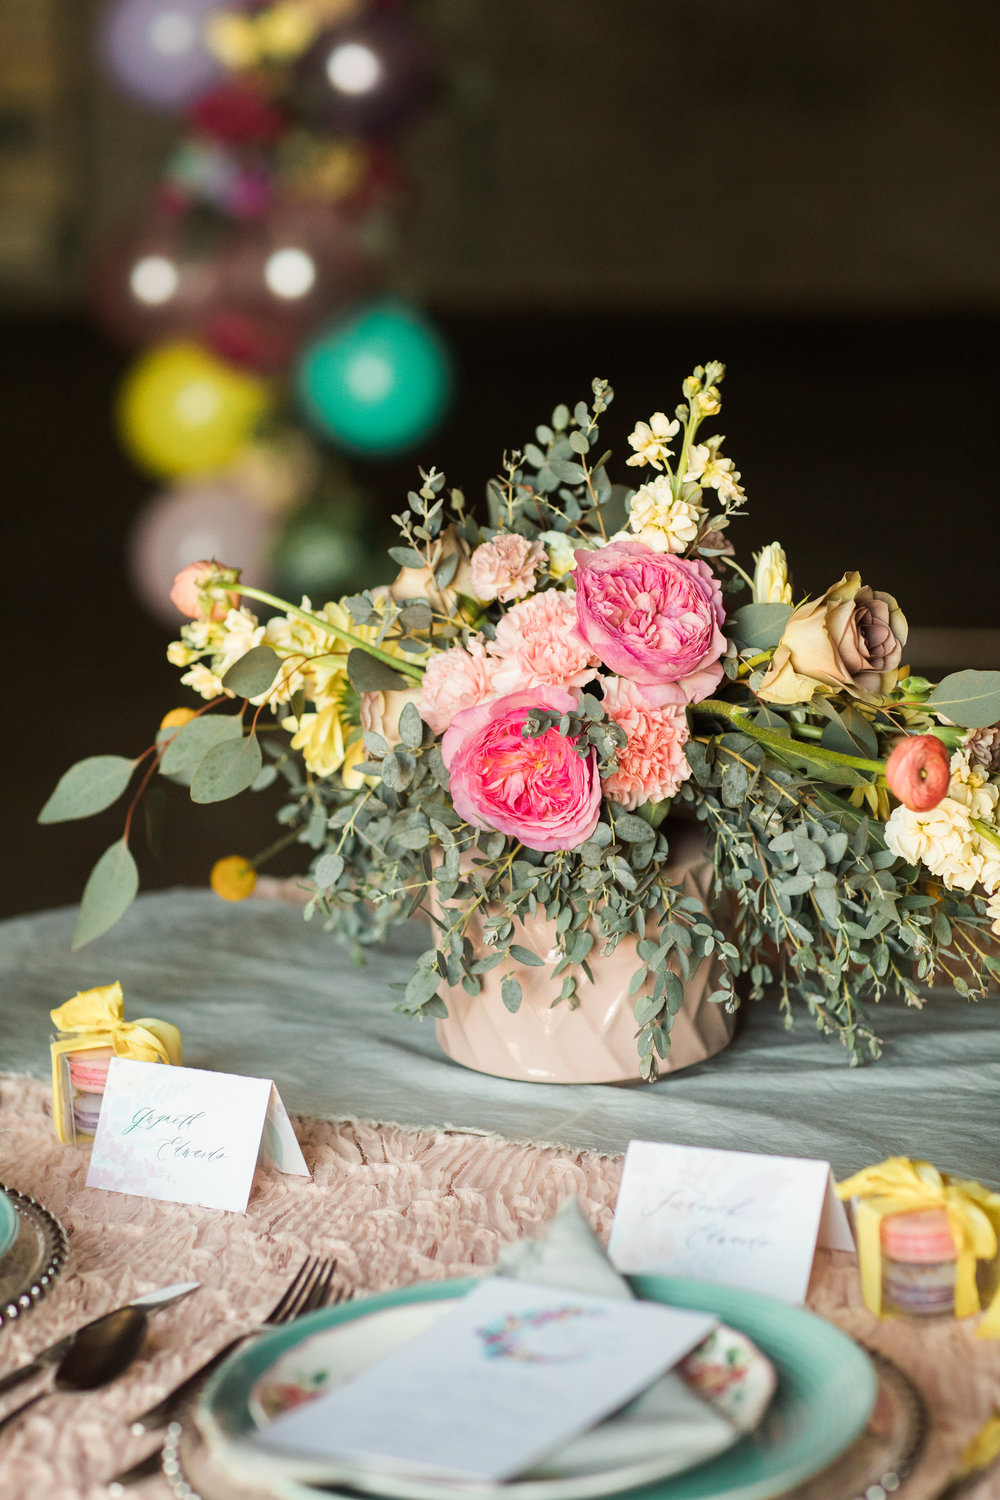 flowers by Floral Sense, menu and place cards by Jade social, photo by Casey Brodley, napkin and ribbon by Rosemarine Textiles, macaroons by Bella e Dolce